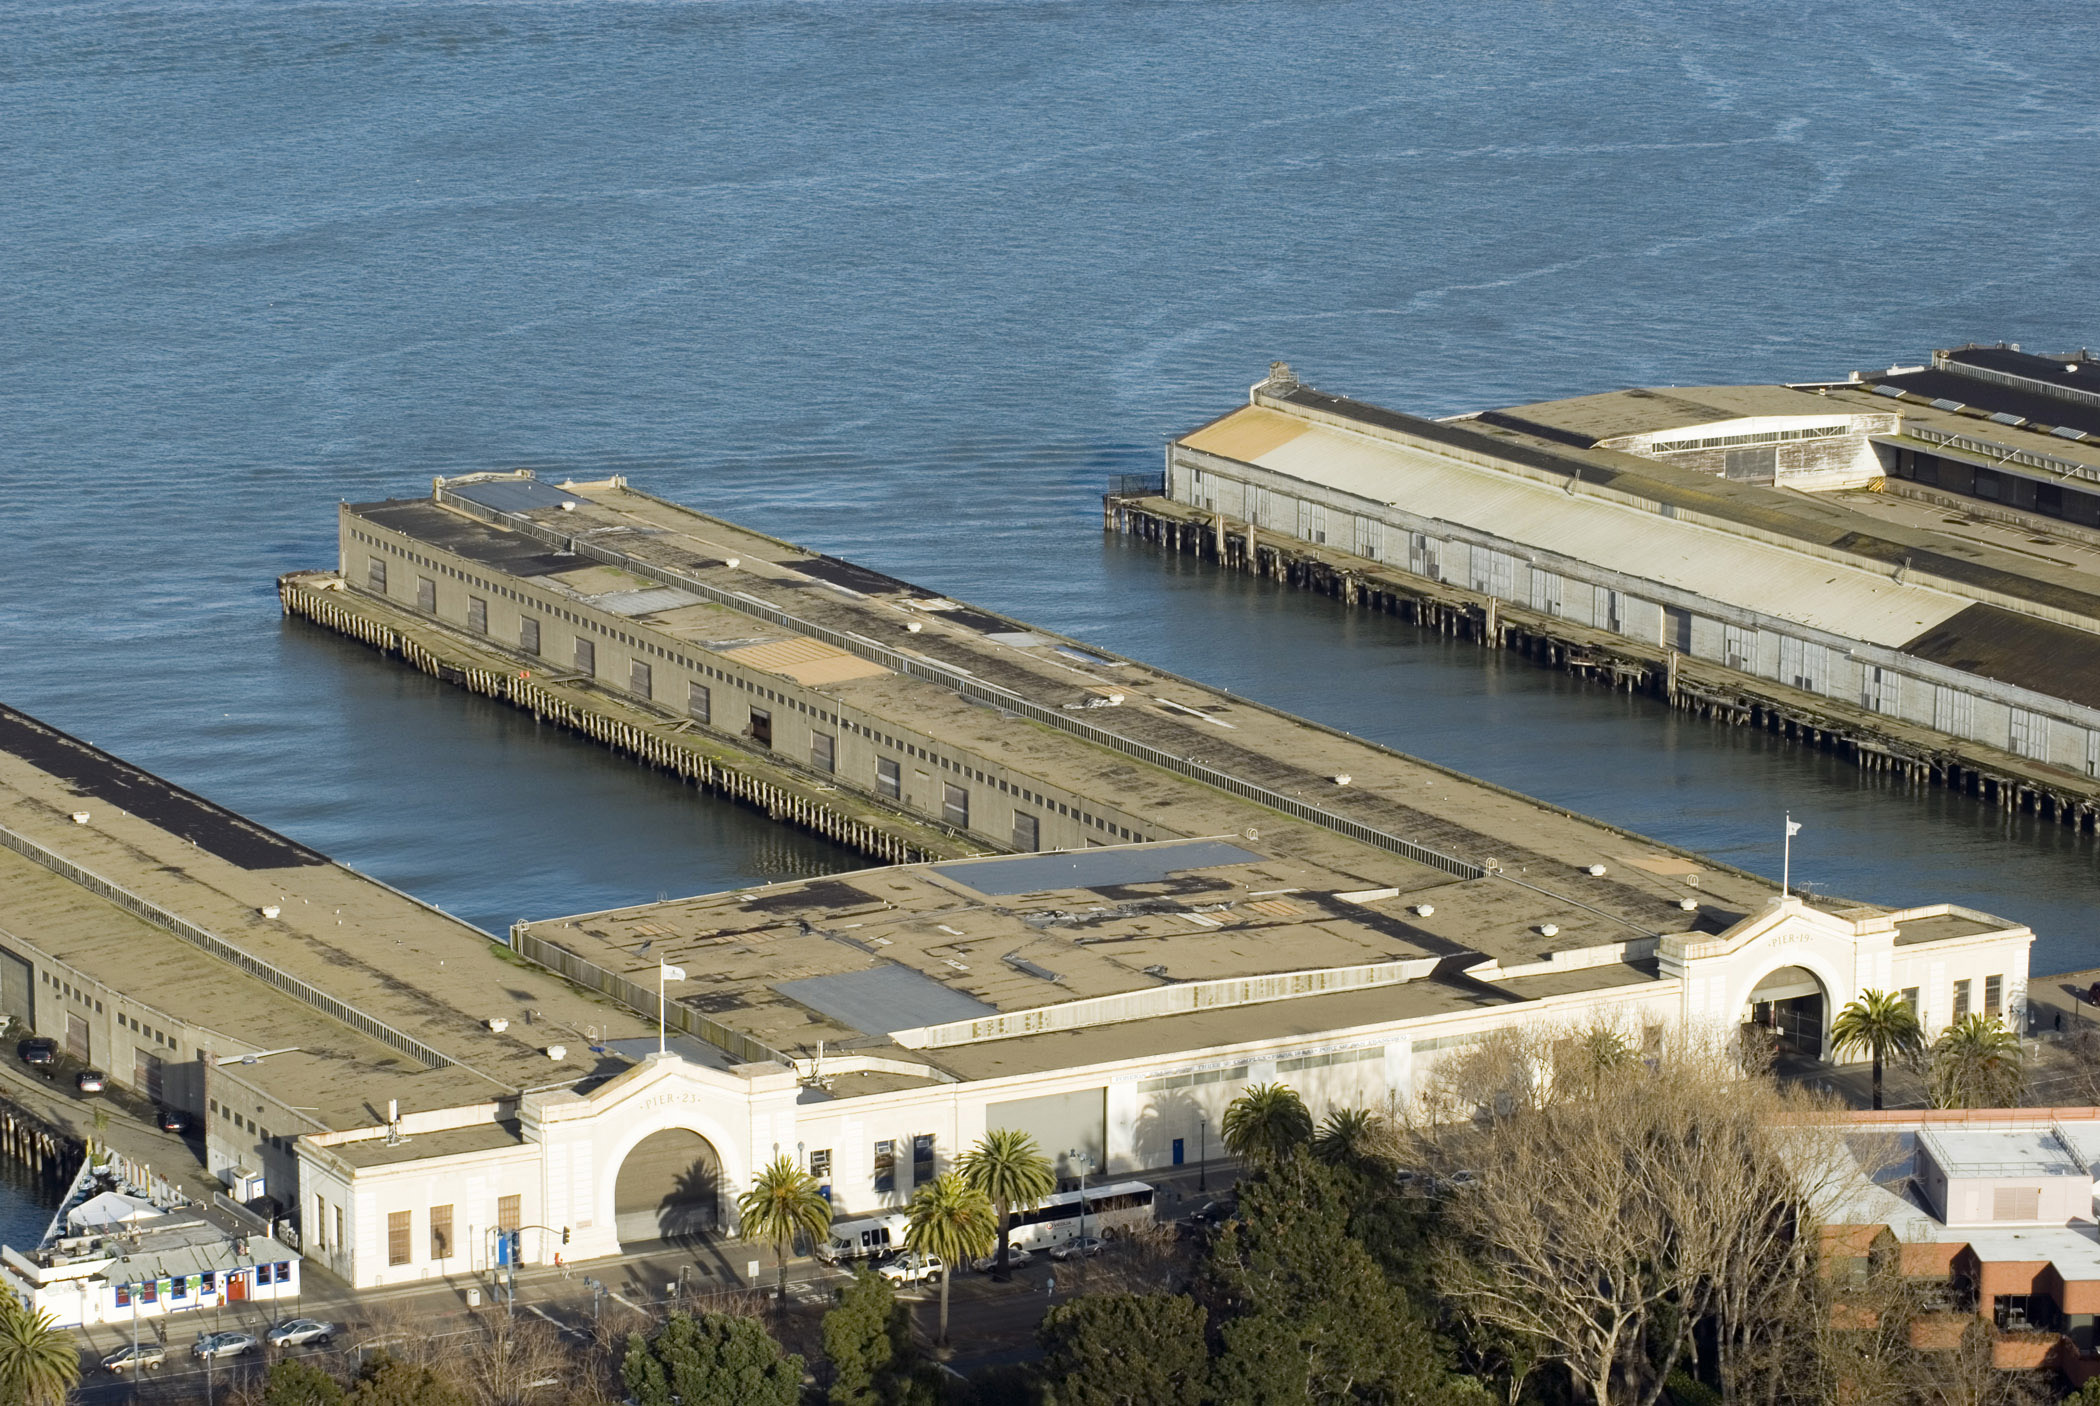 Aerial view of the do historical decommissioned San Francisco Piers and warehouses at the docks